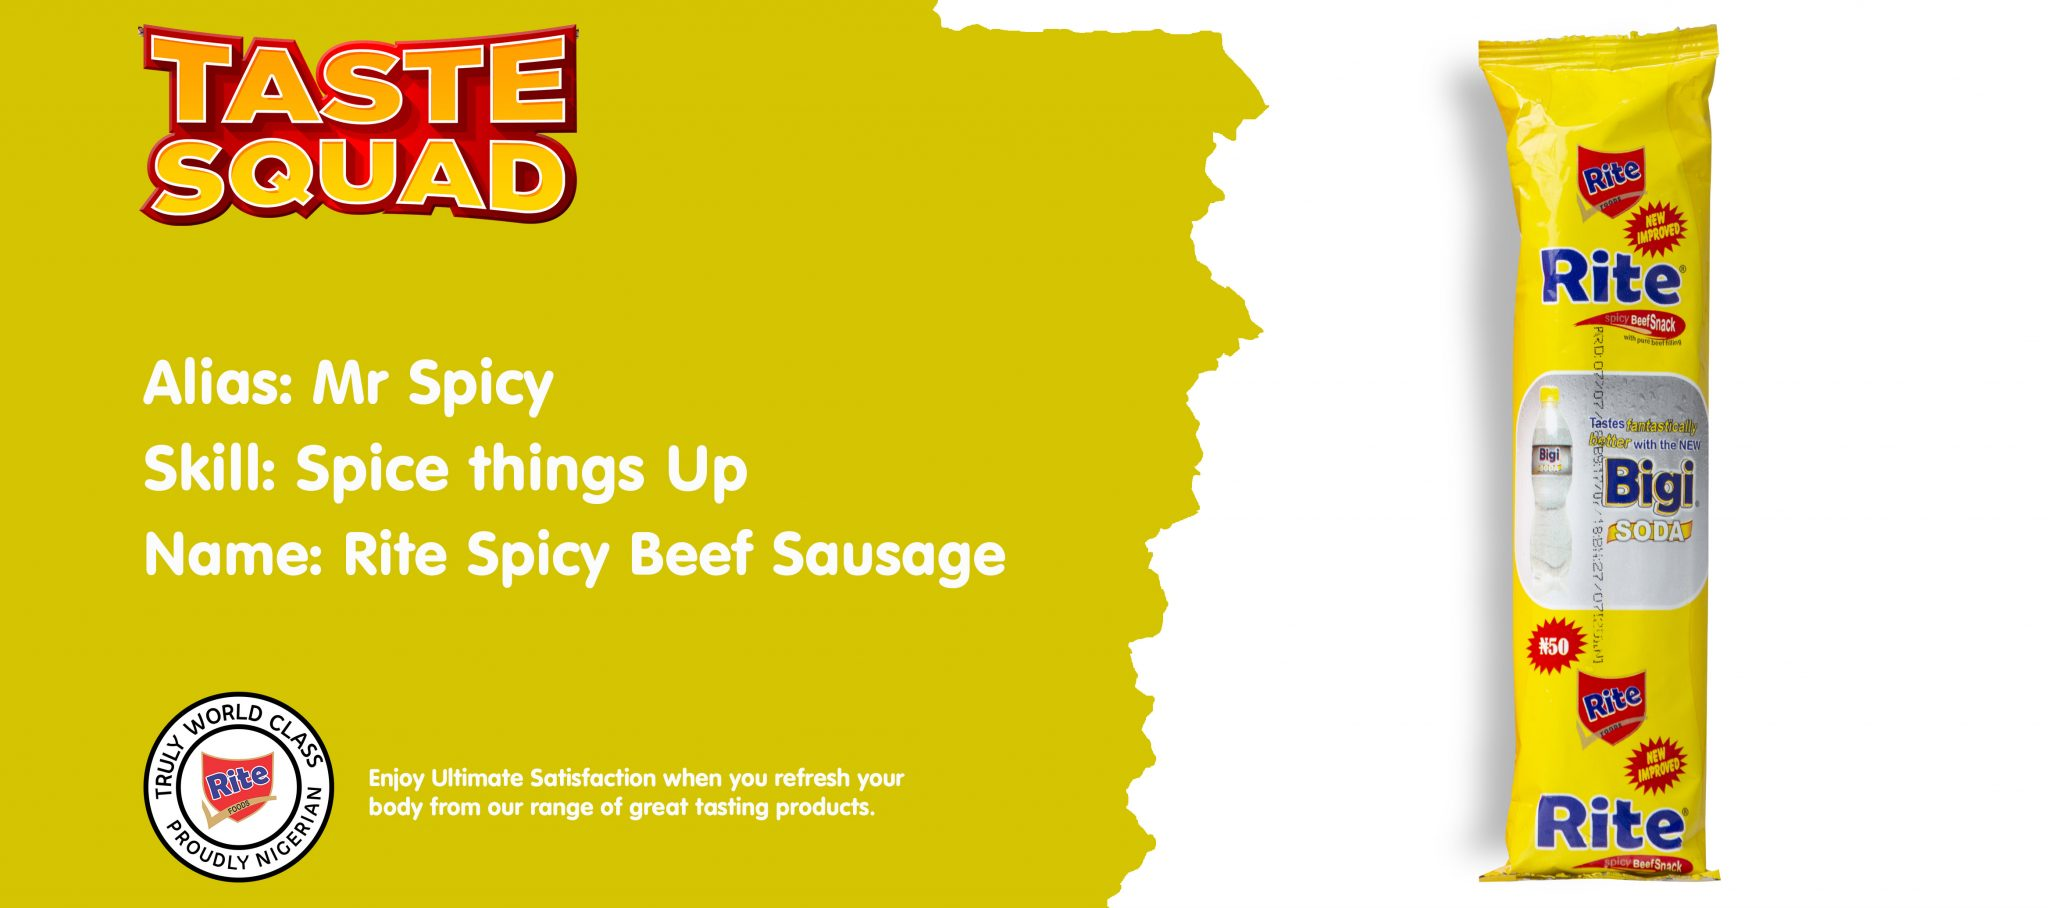 Spicy Beef Sausage